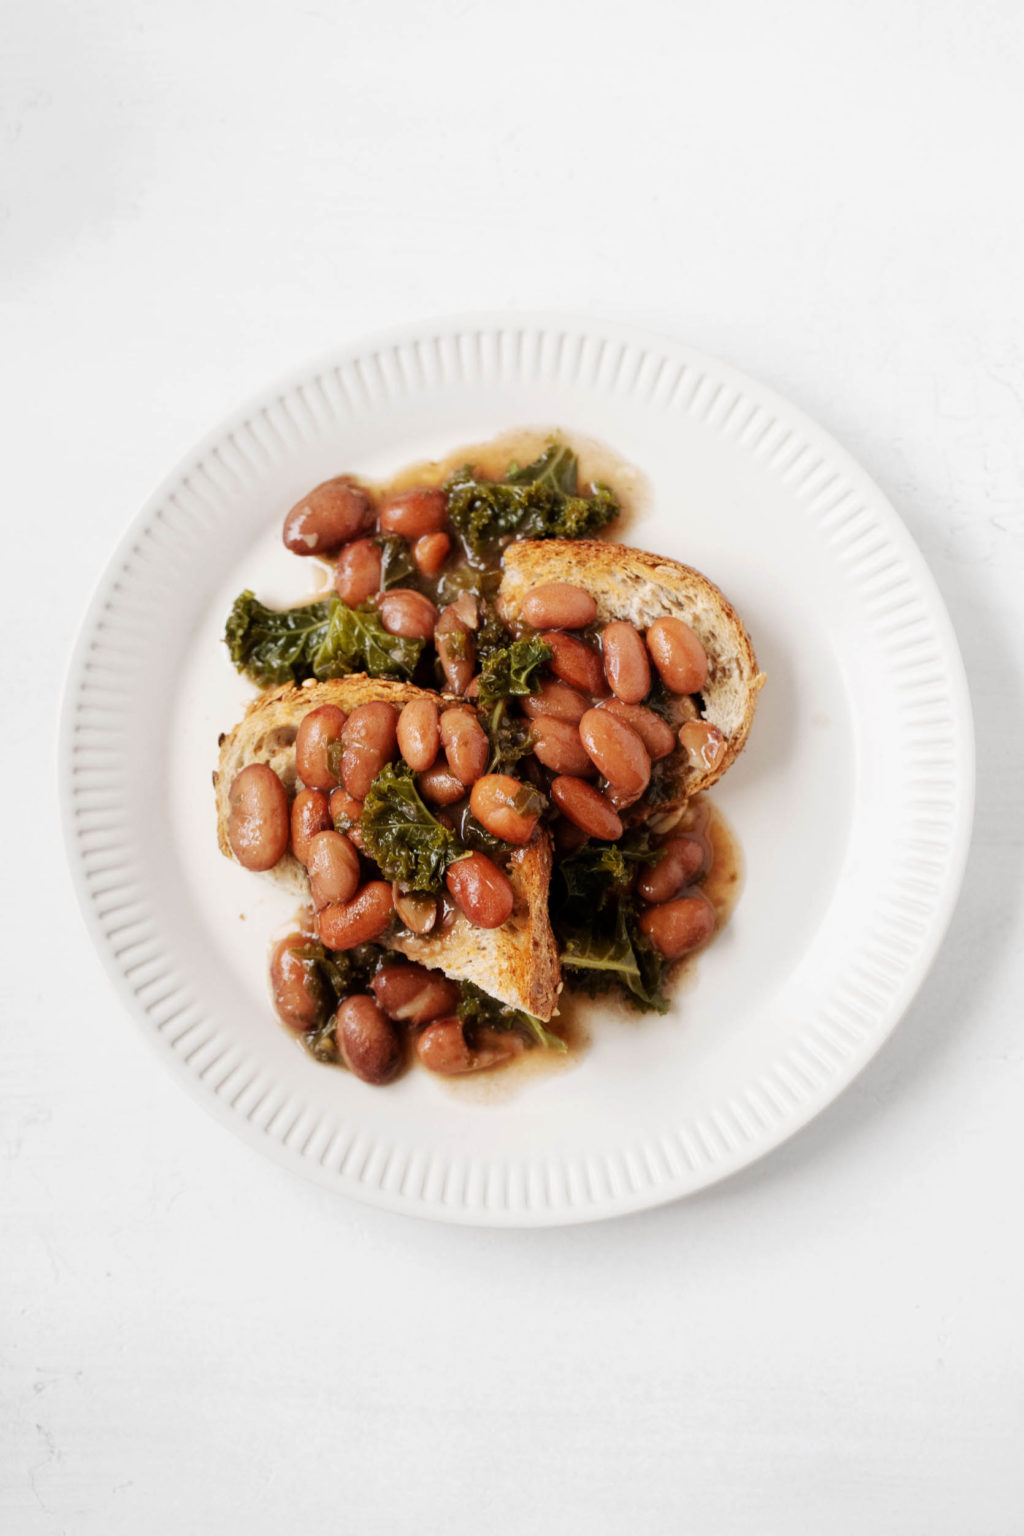 A white, fluted plate holds two slices of toast, cooked leafy greens, and a plant-based protein.